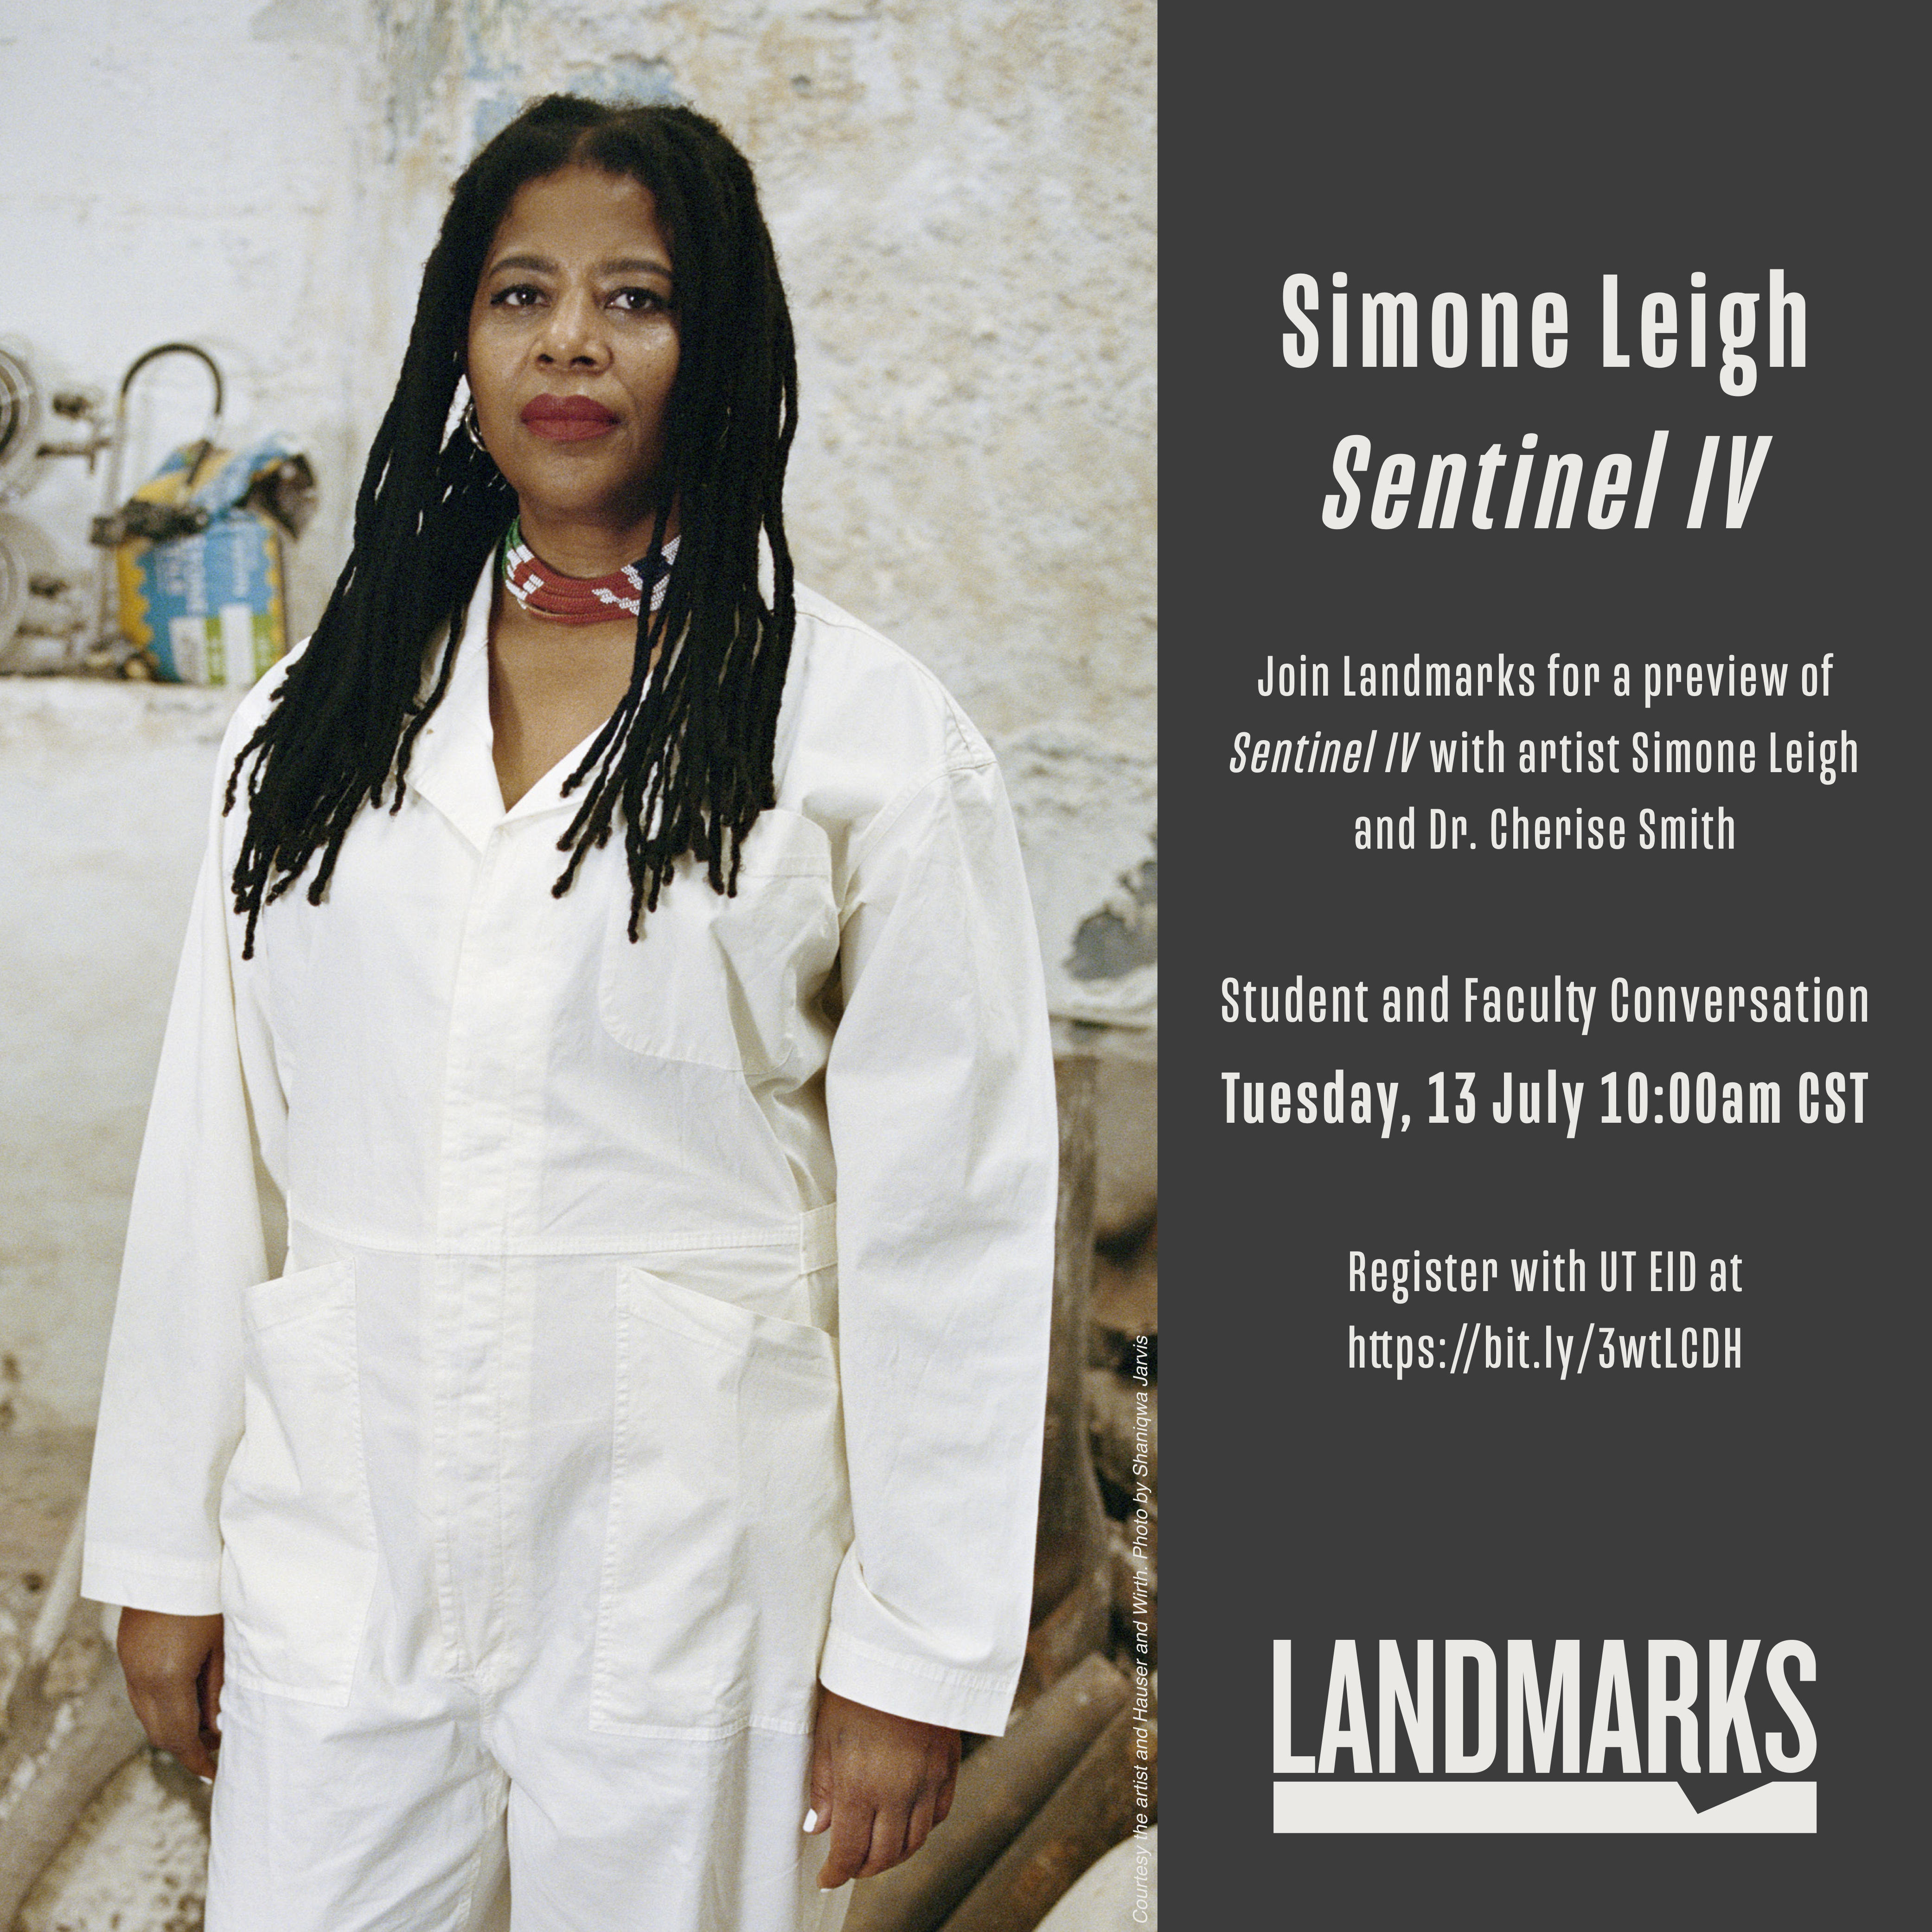 A graphic with an image of Simone Leigh on the left and a grey vertical bar on the right with event details